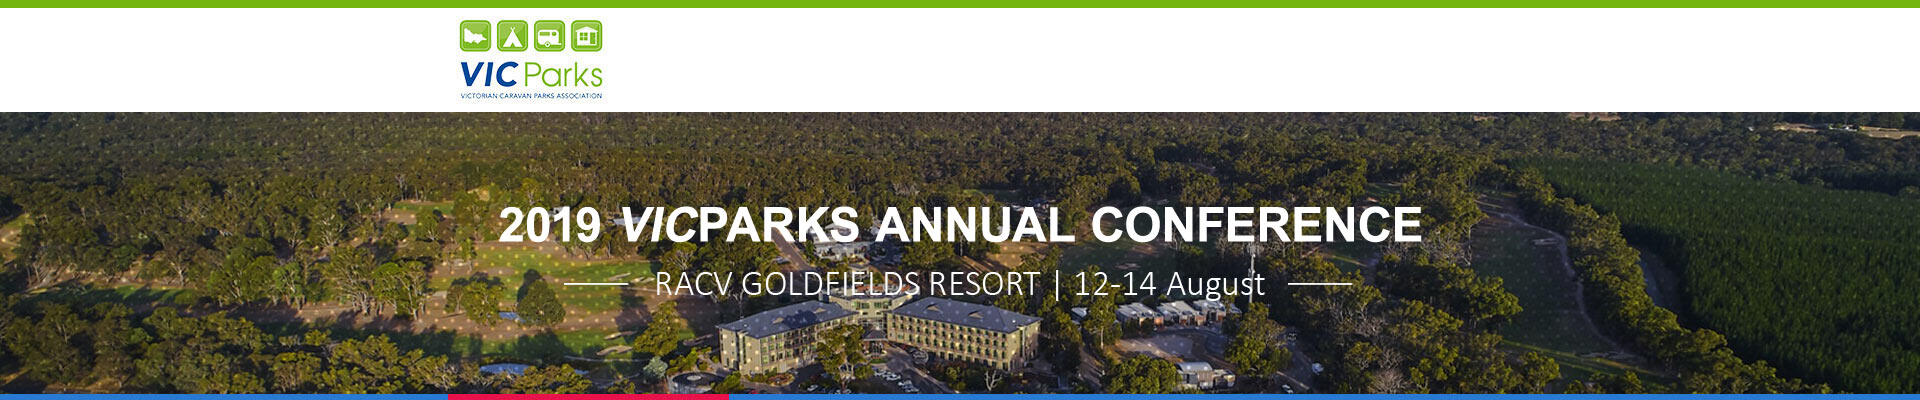 2019 VicParks Annual Conference